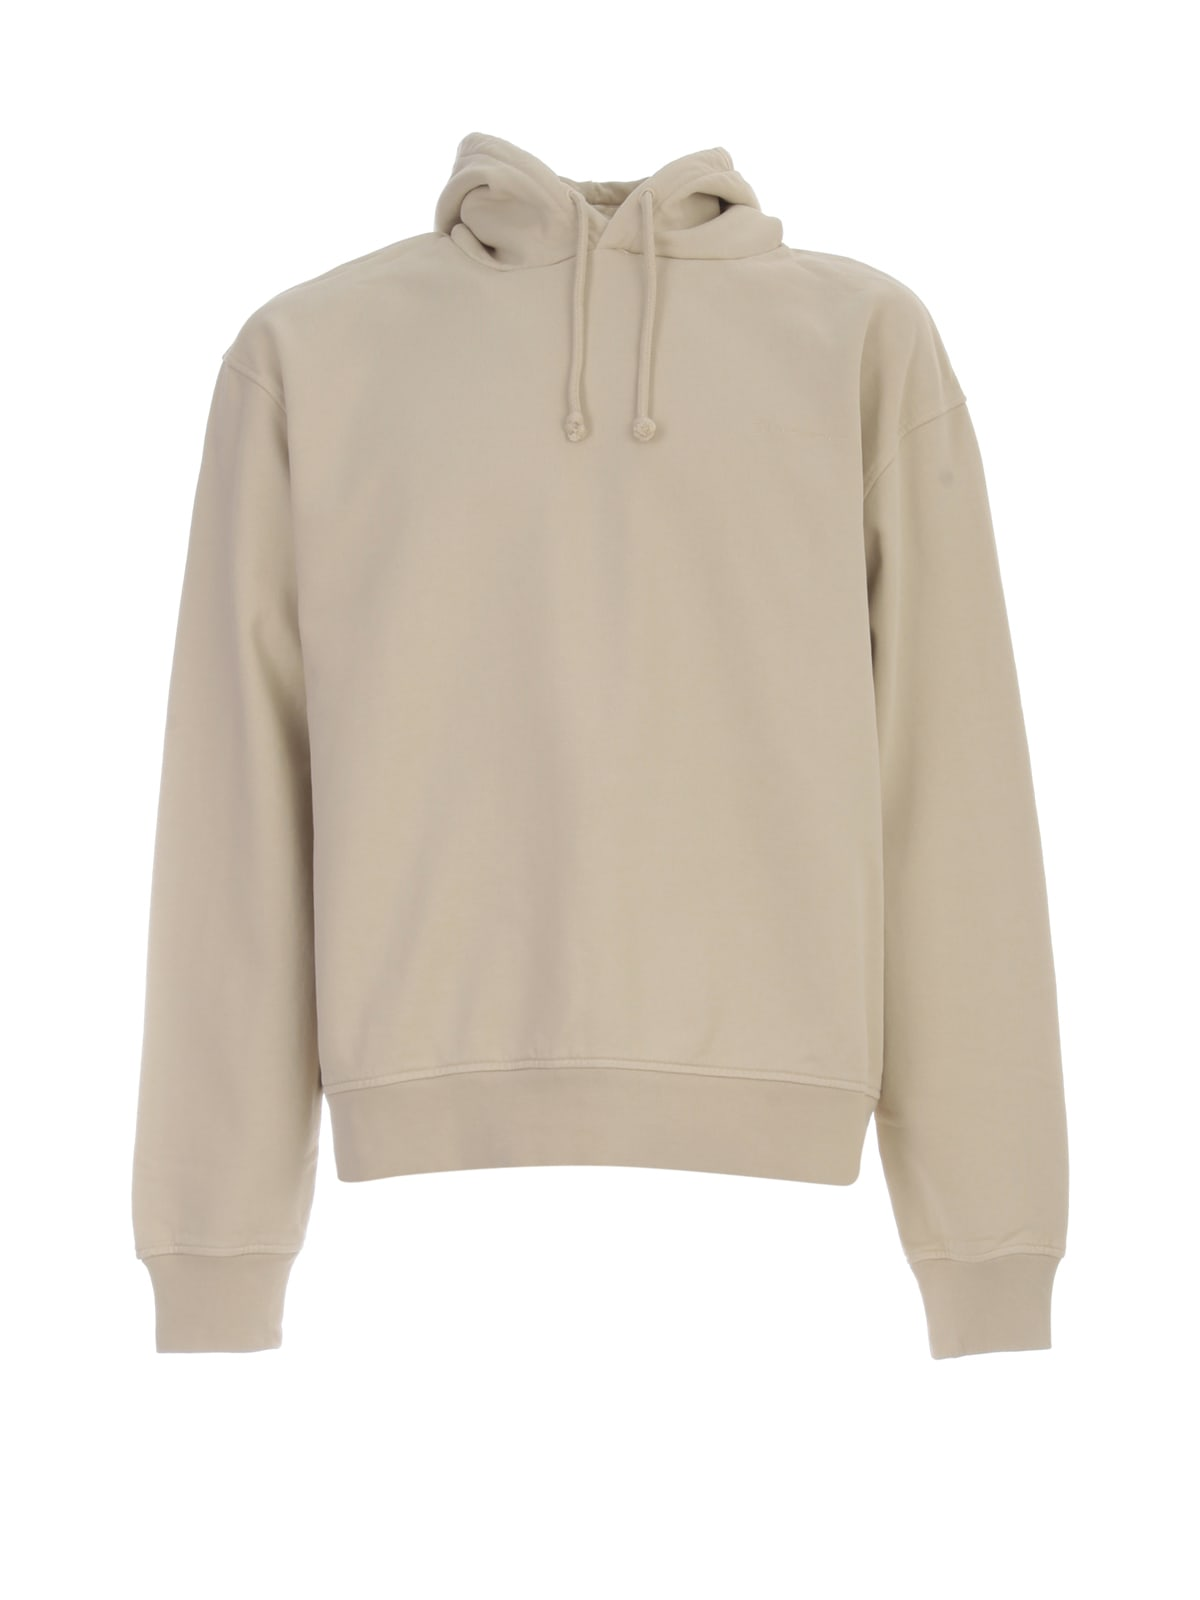 Jacquemus Cottons LE SWEAT HOODED SWEATSHIRT